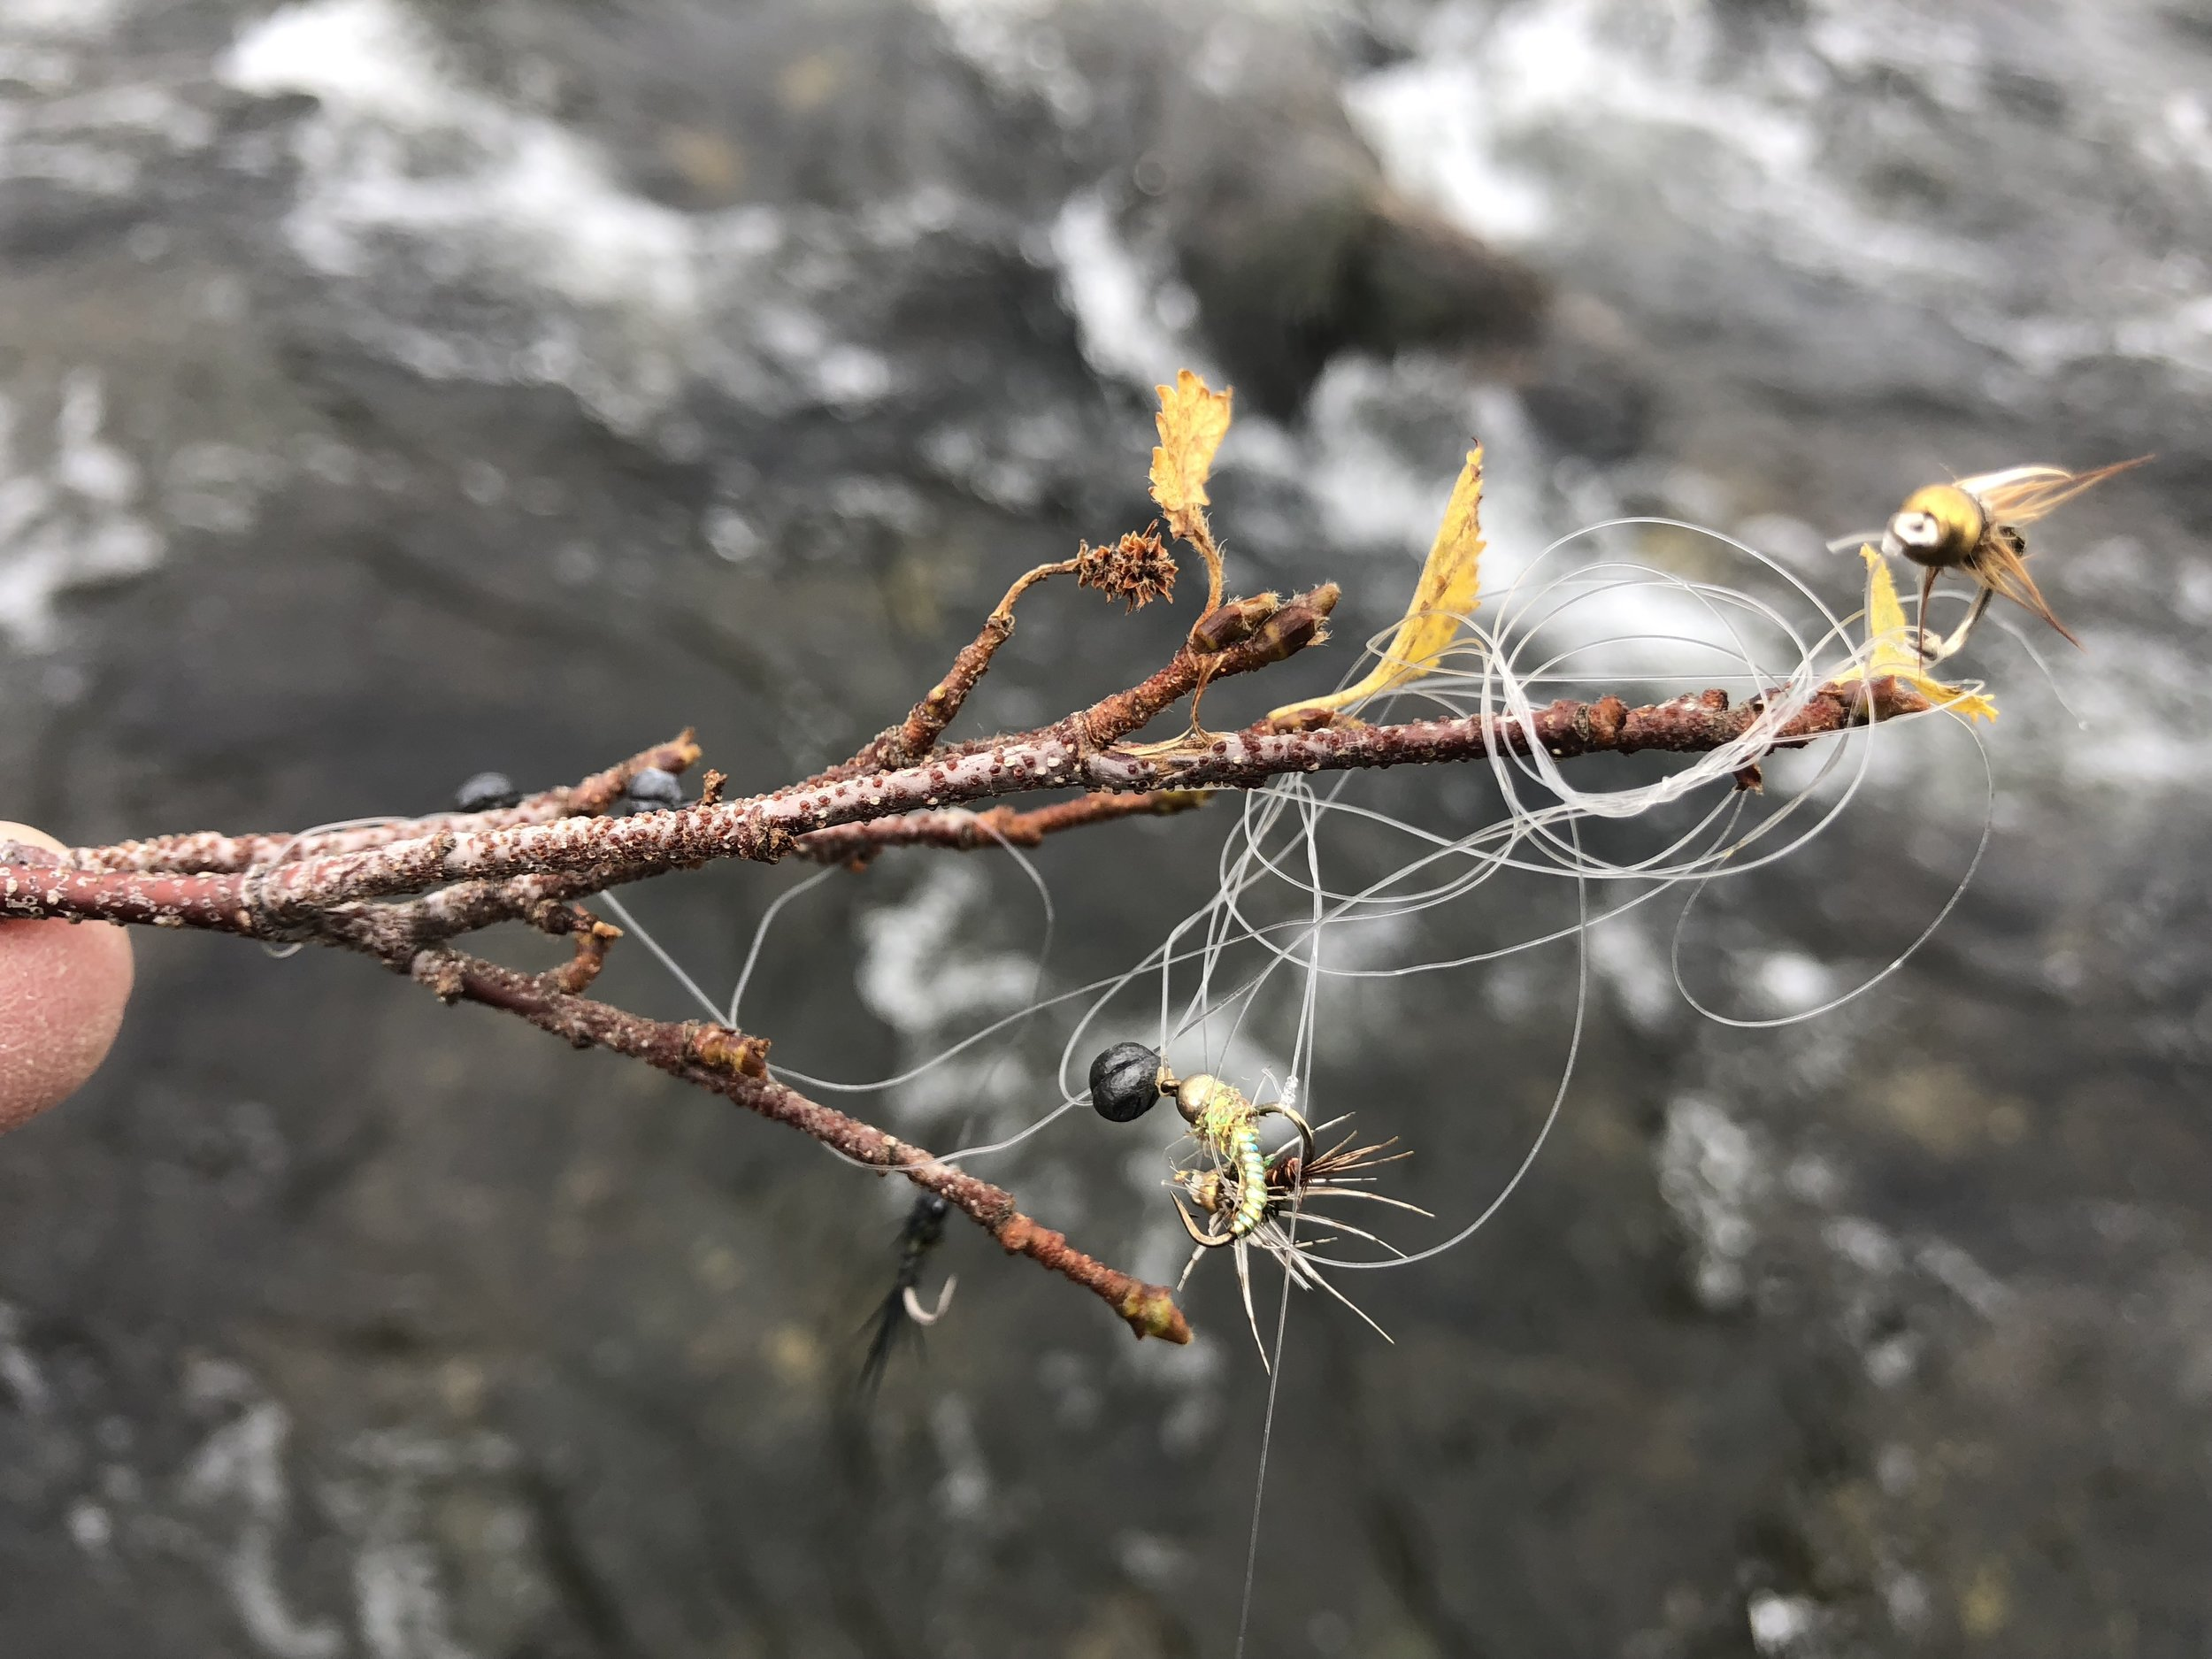 I'm not suggesting to risk your life to retrieve flies, but please do so if it's possible without risks. This mangled limb was only several feet off the bank of The Madison River…even my 7 year old son could have retrieved these flies without the risk of falling in.